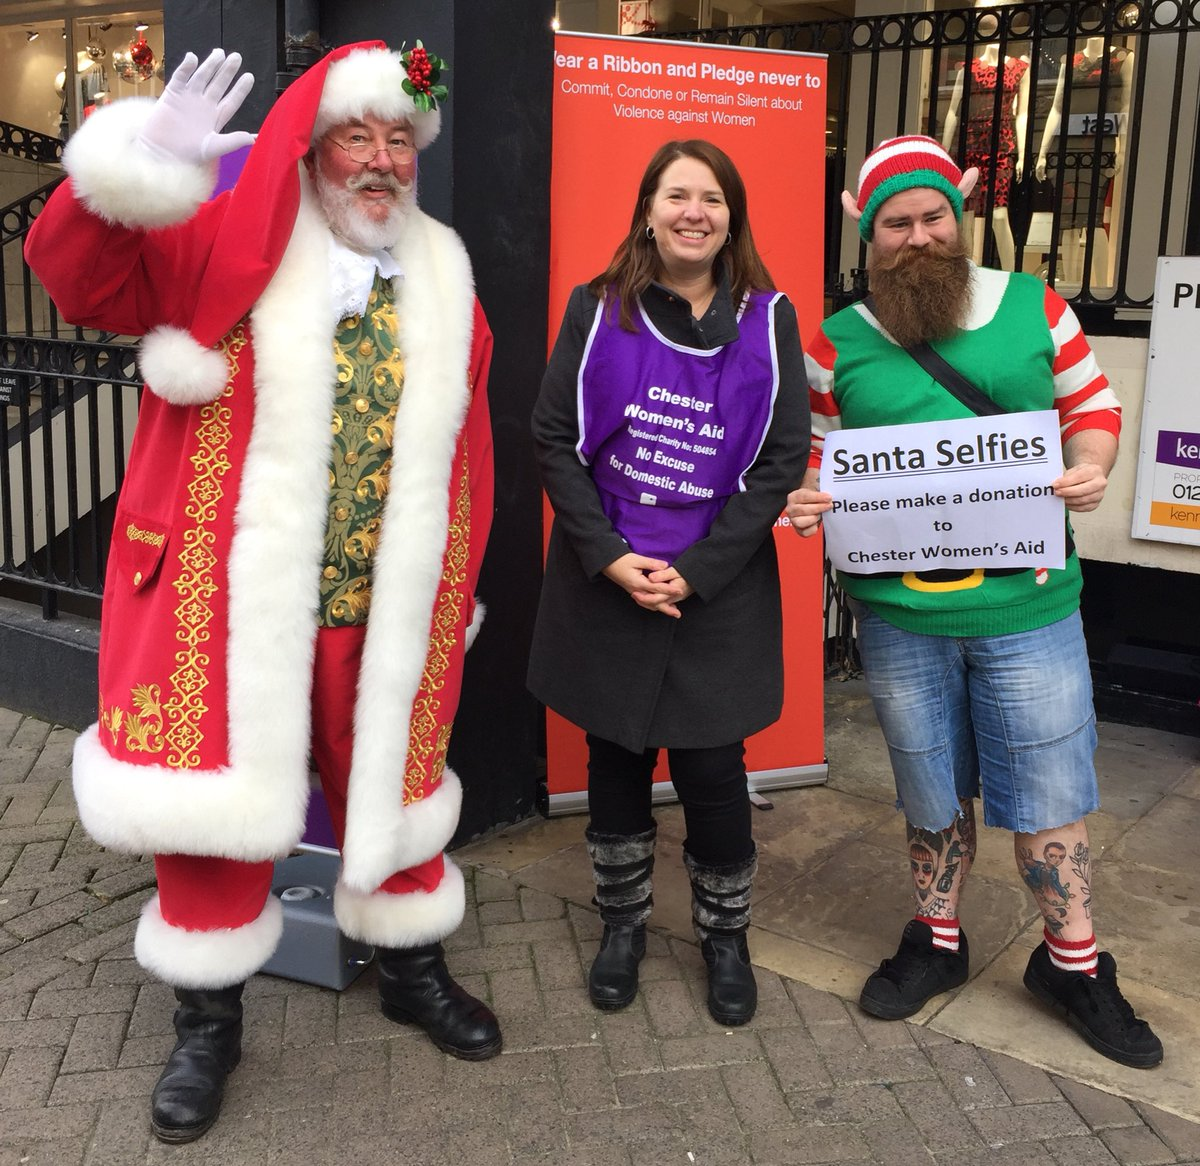 I don&#39;t know who&#39;s more excited for #FatherChristmas, us or the kids of #Chester! You&#39;ll find him at the Christmas Market for selfies. #WhiteRibbonDay @hhhancock <br>http://pic.twitter.com/bQnBHpEnzQ